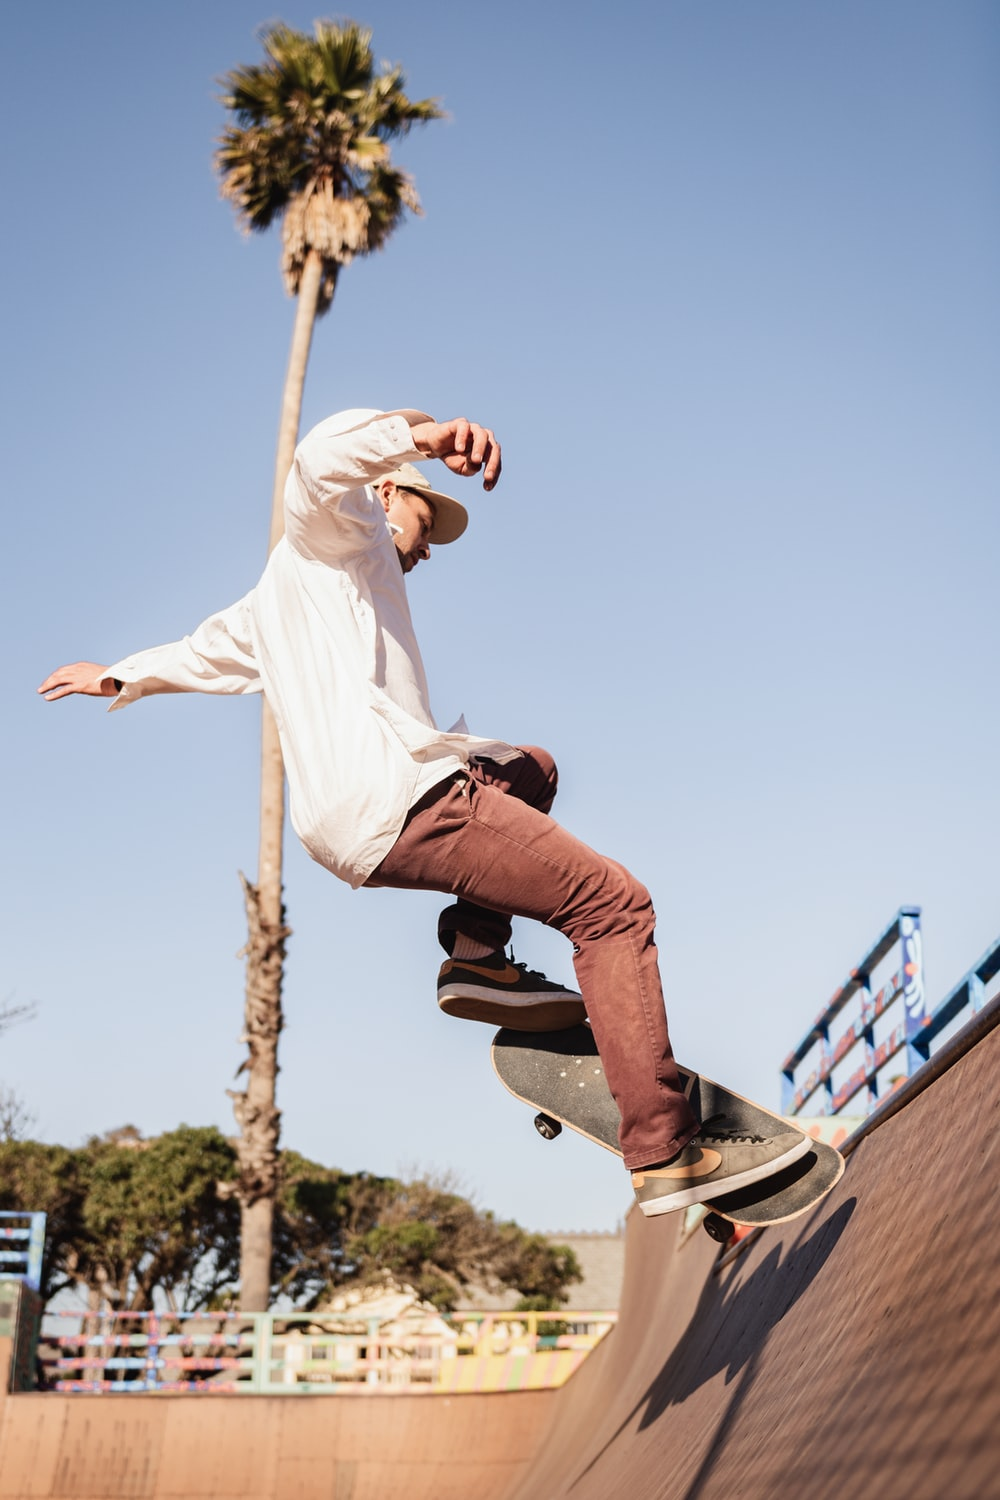 man in white t-shirt and blue denim jeans jumping on blue metal railings during daytime